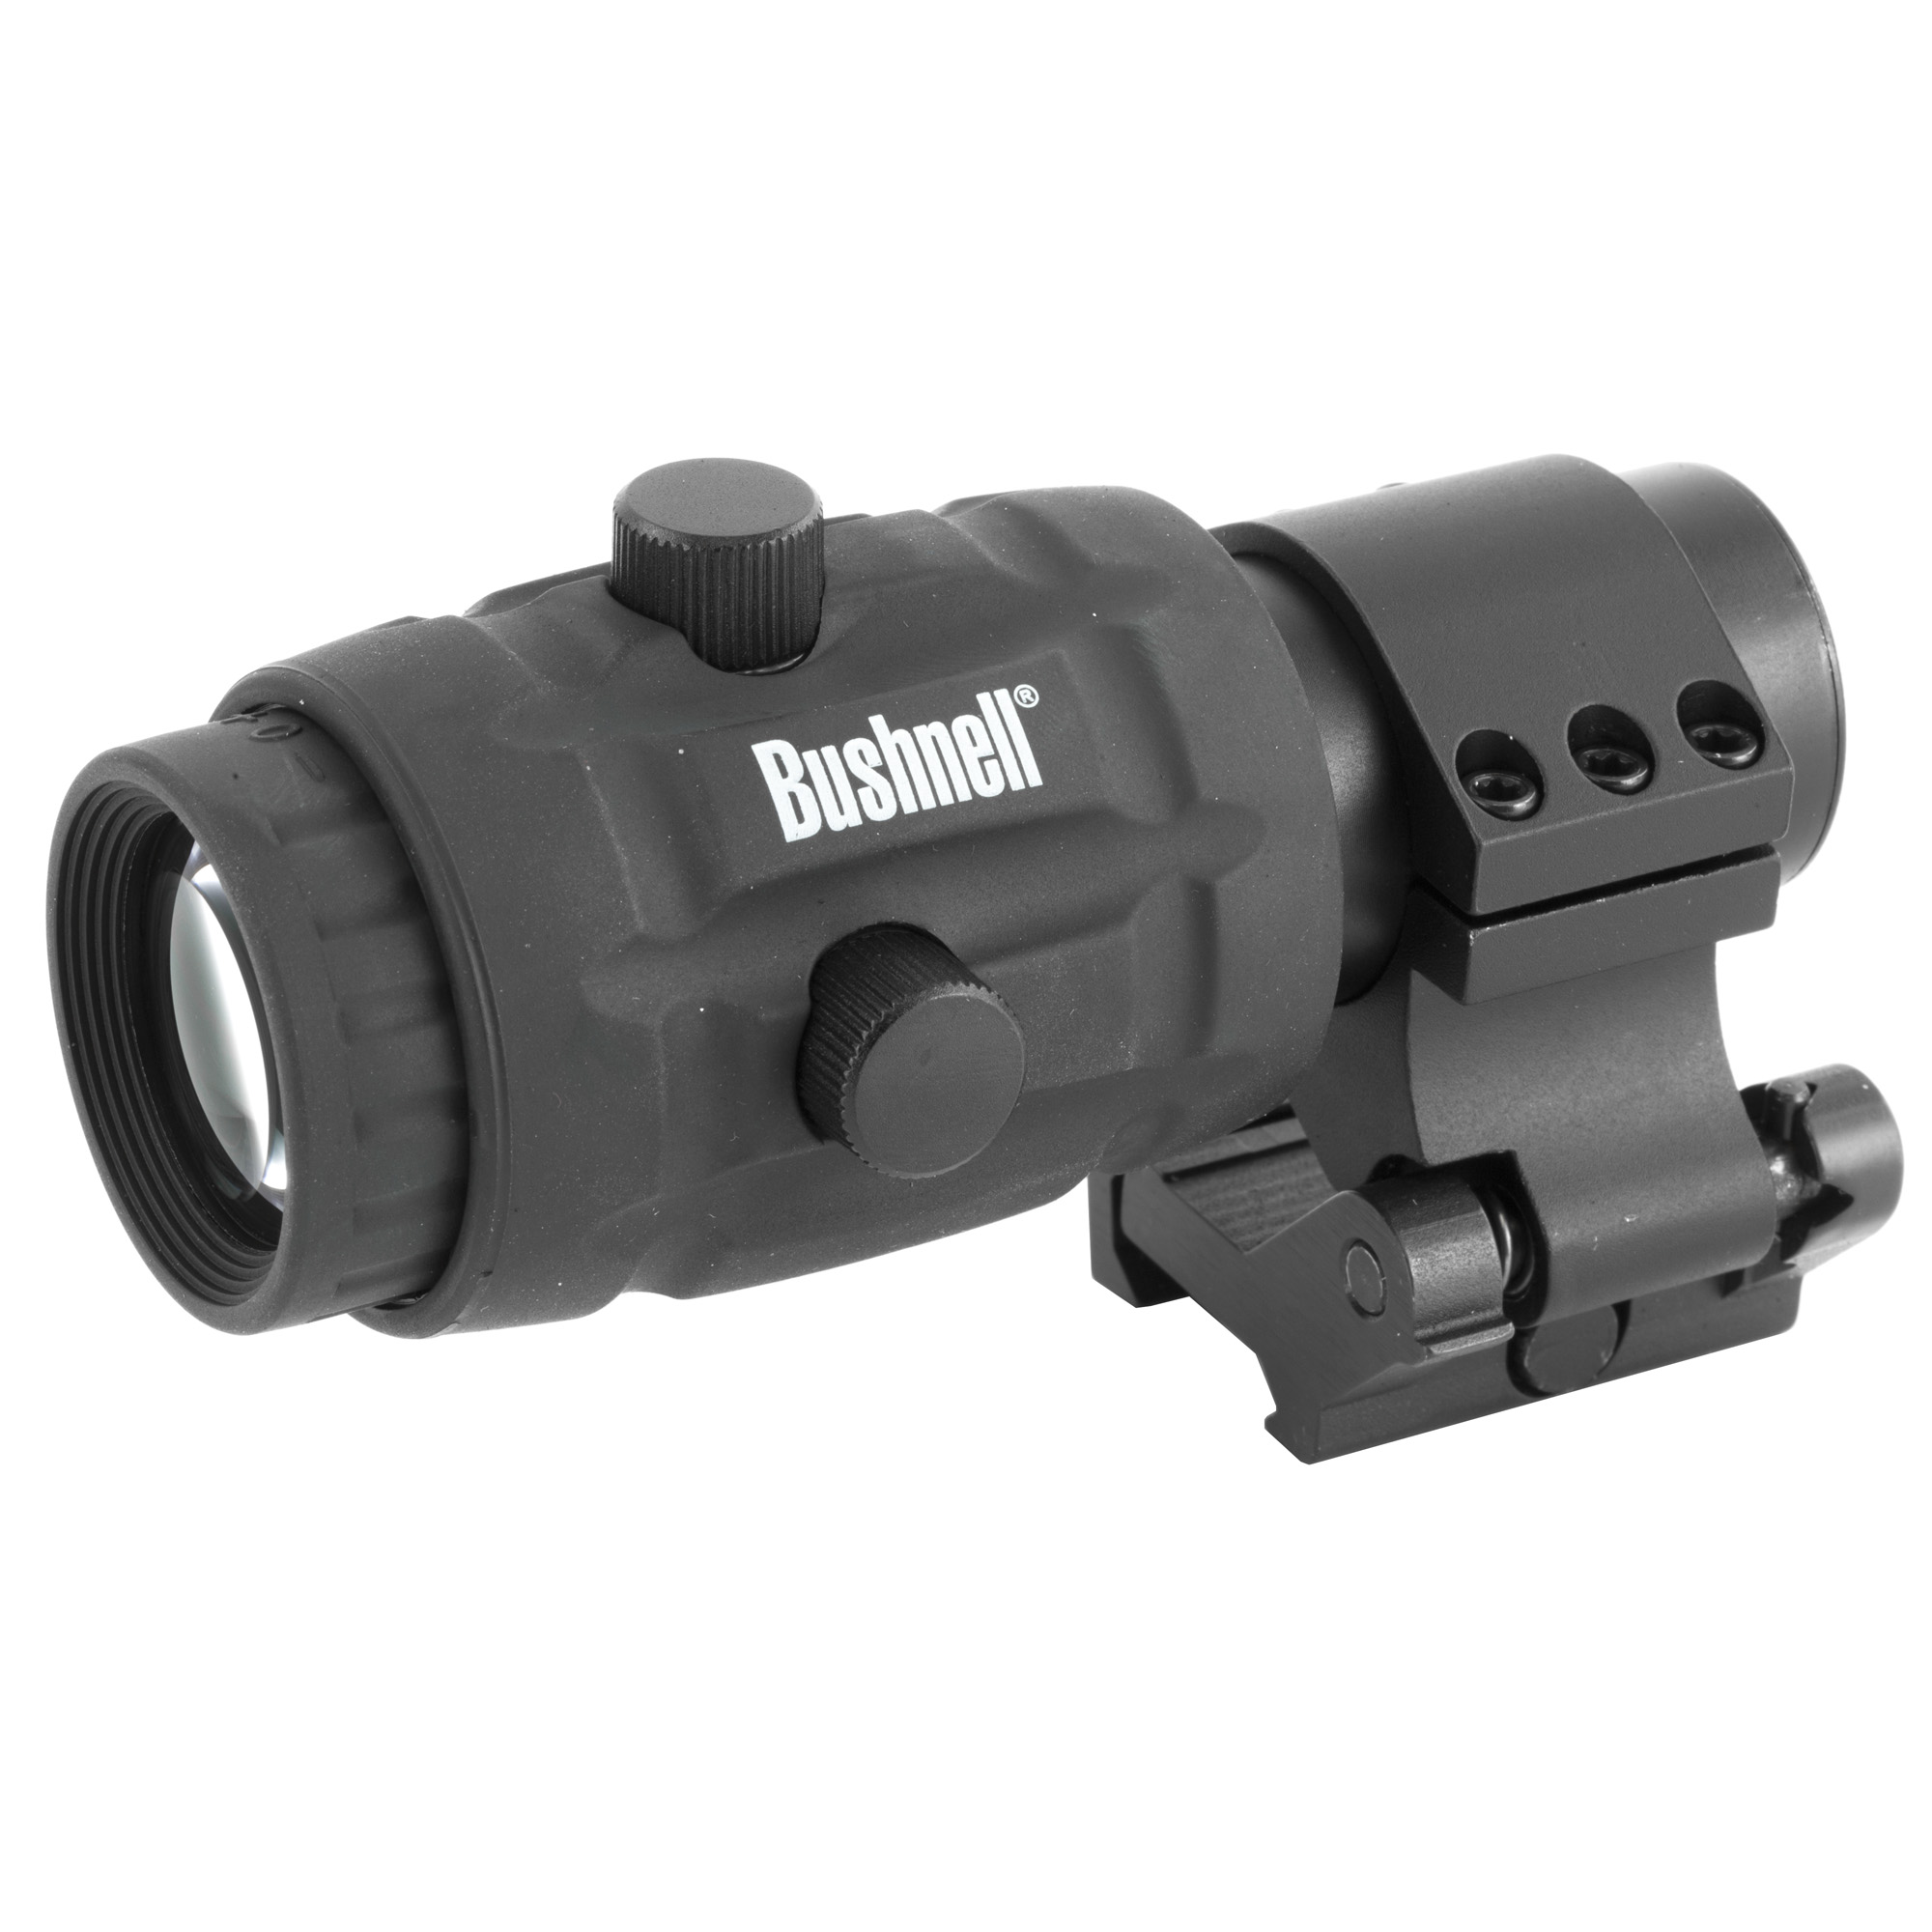 """The Bushnell AR Optics Transition 3x Magnifier offers instant red dot magnification when you want it and flips out of the way when you don't. It pairs perfectly with the Bushnell TRS-25 Red Dot but is compatible with any red dot optic. The included ambidextrous flip mount quickly attaches to your accessory rail"""" and fully multi-coated optics deliver crisp"""" bright images. Add some power to your favorite red dot with the Bushnell AR Optics Transition 3x Magnifier."""